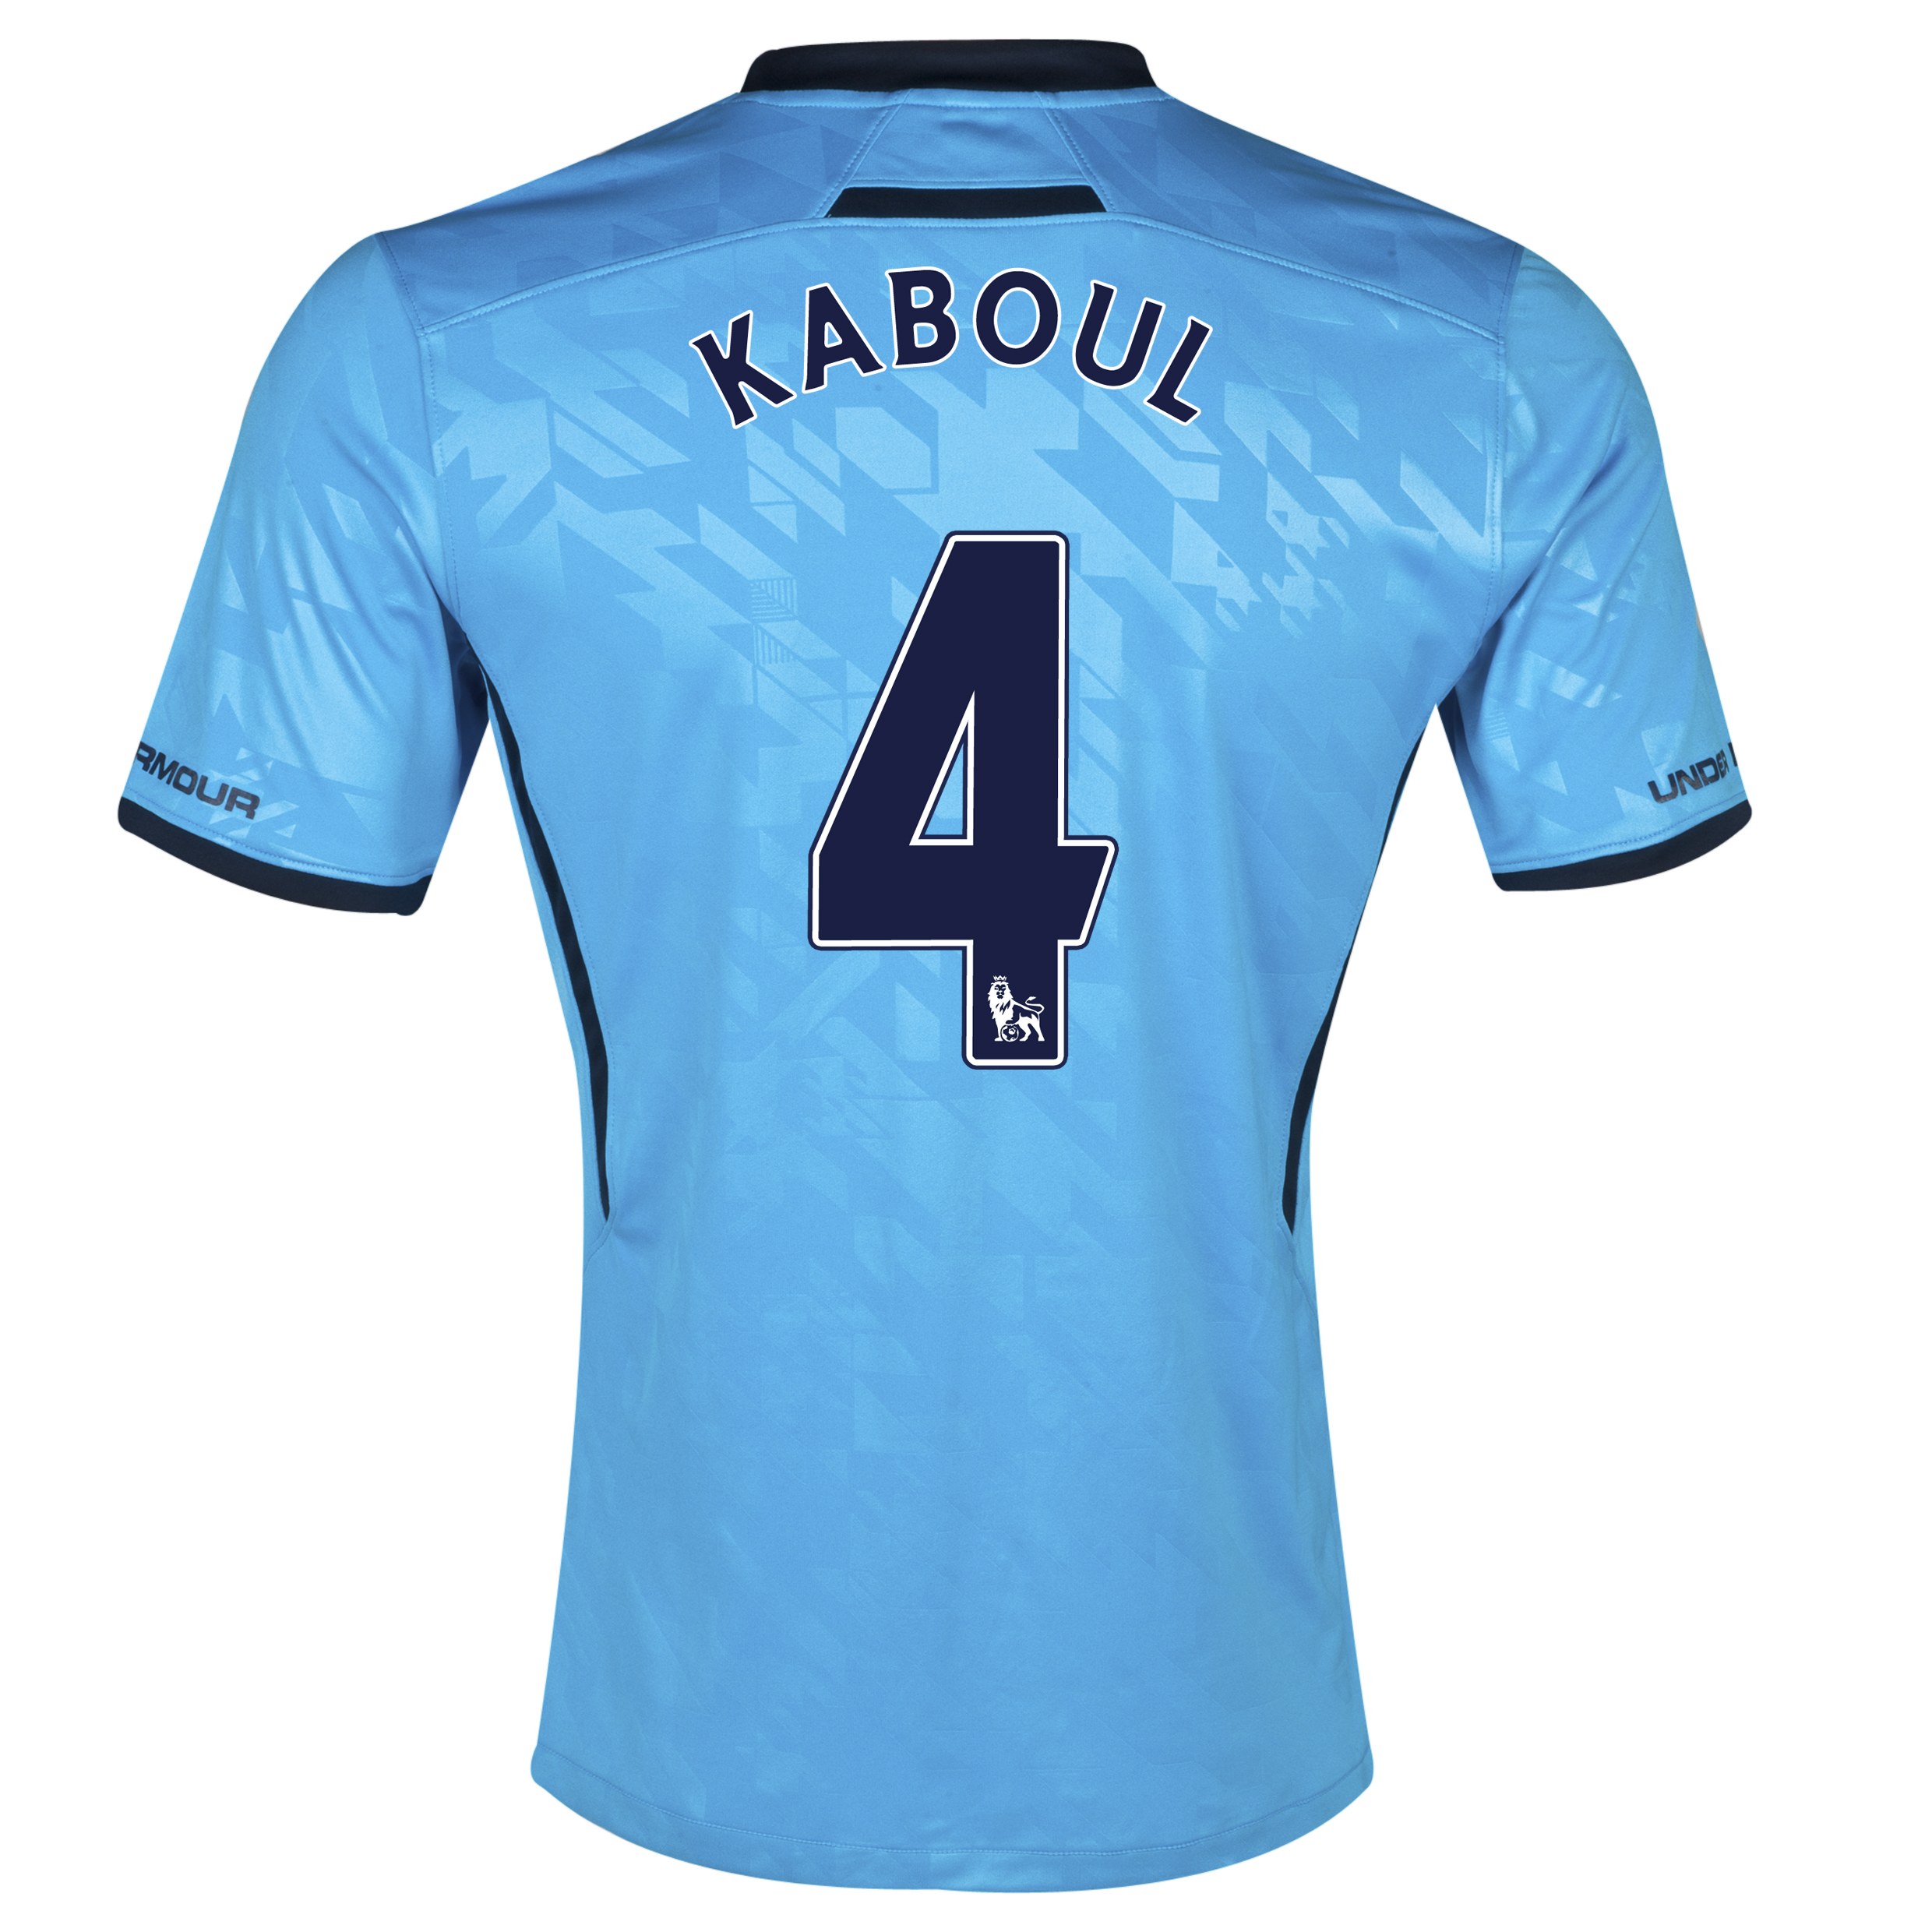 Tottenham Hotspur Away Shirt 2013/14 - Womens with Kaboul 4 printing